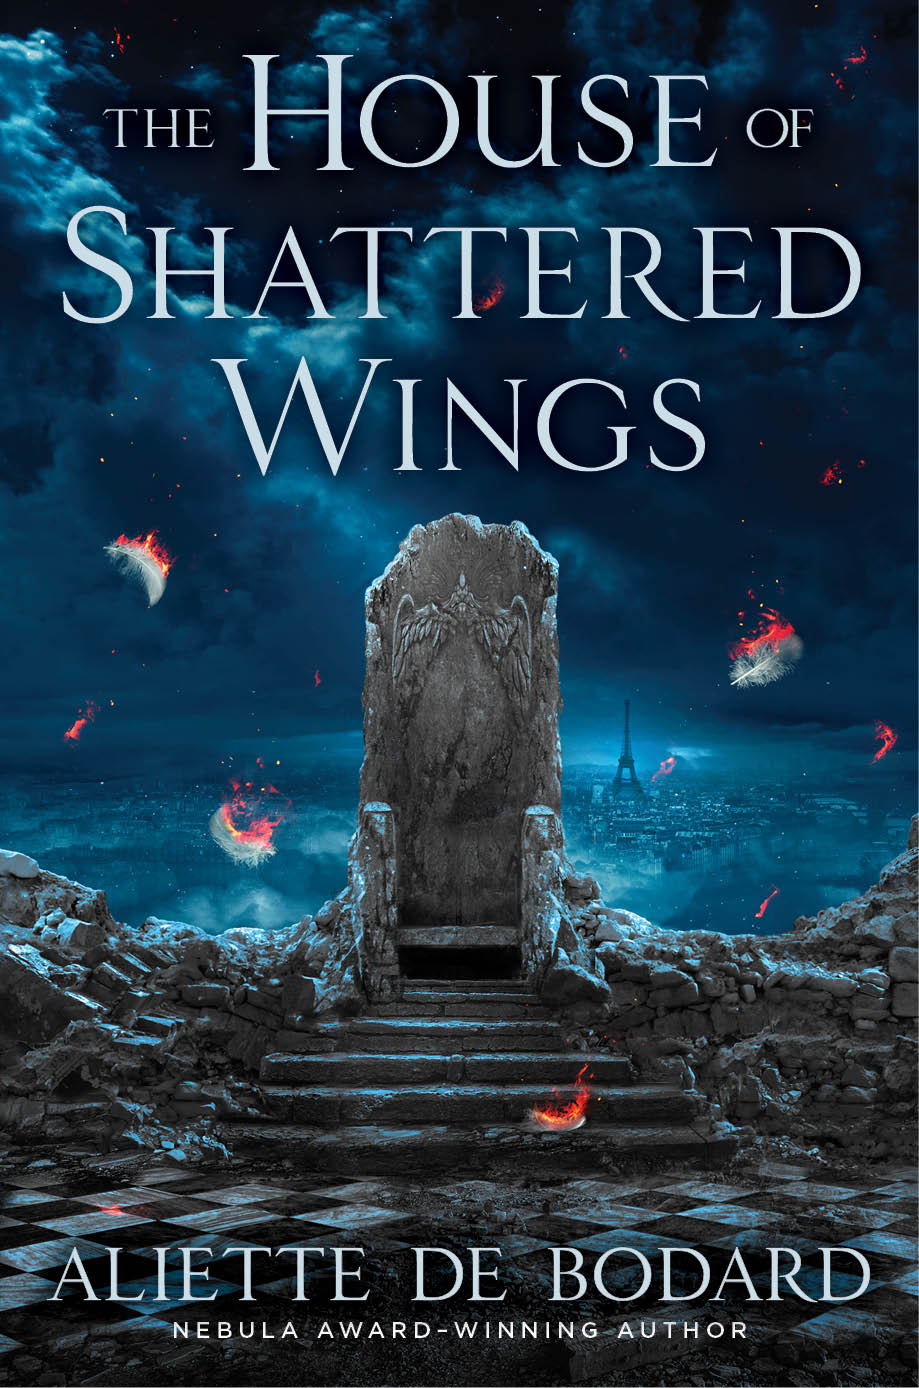 Fantasy Adventure Book Cover ~ Cover reveal the house of shattered wings by aliette de